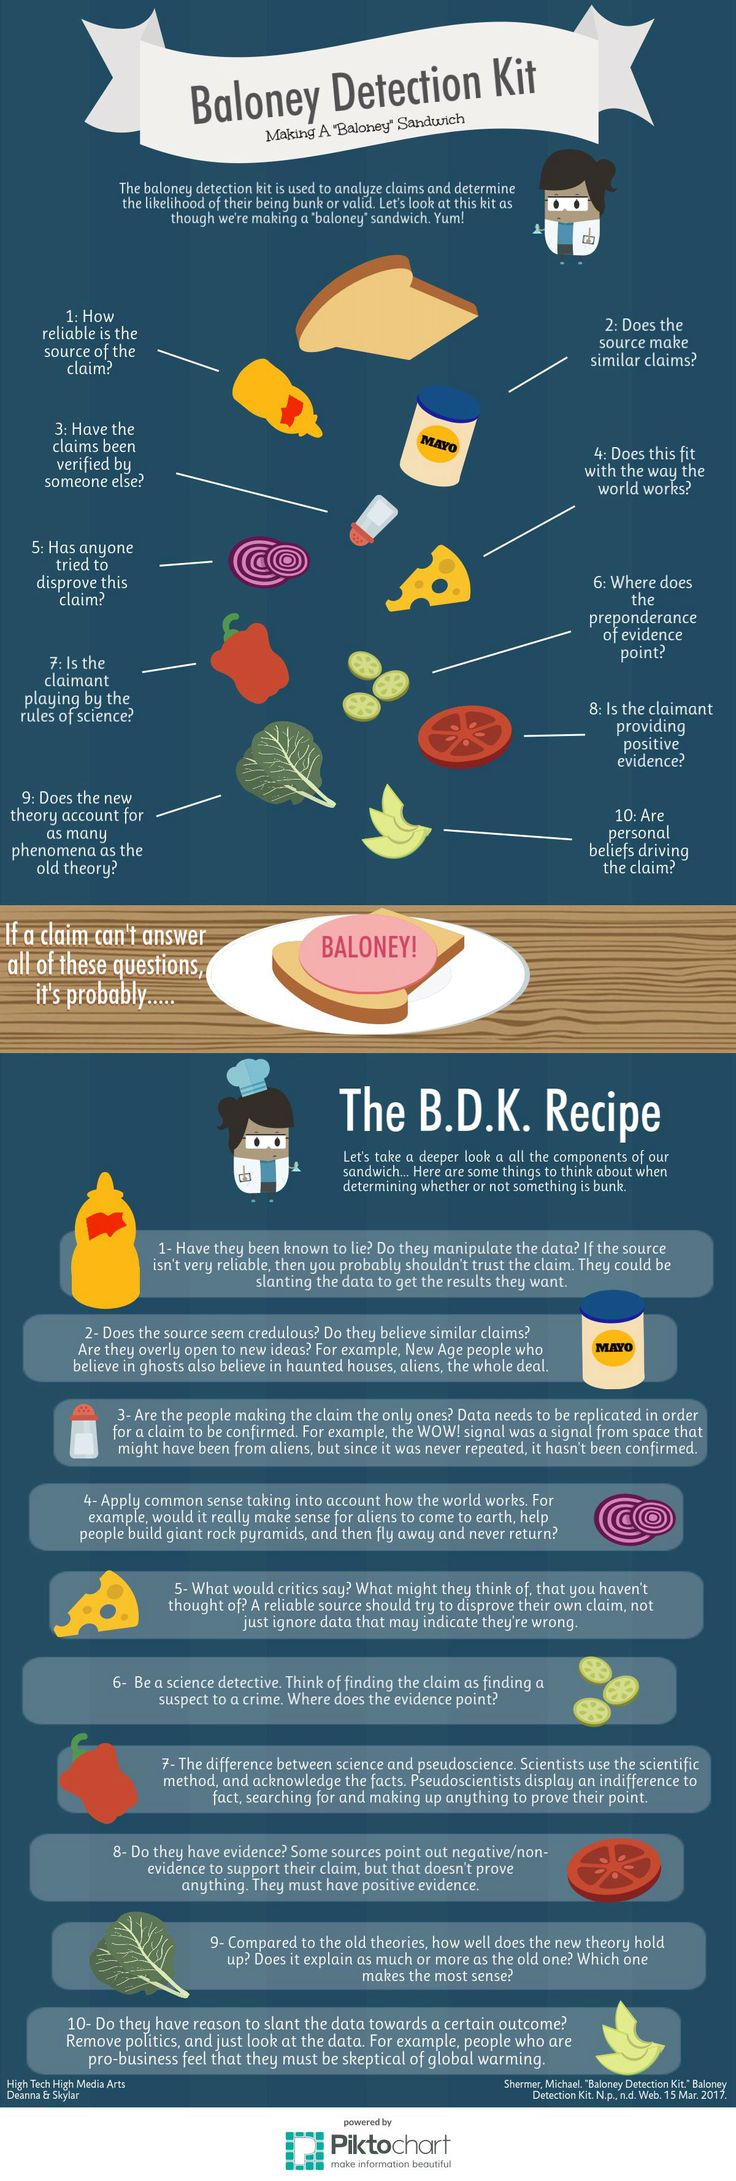 What idea did hardy and weinberg disprove - Baloney Detection Kit Infographic Detail